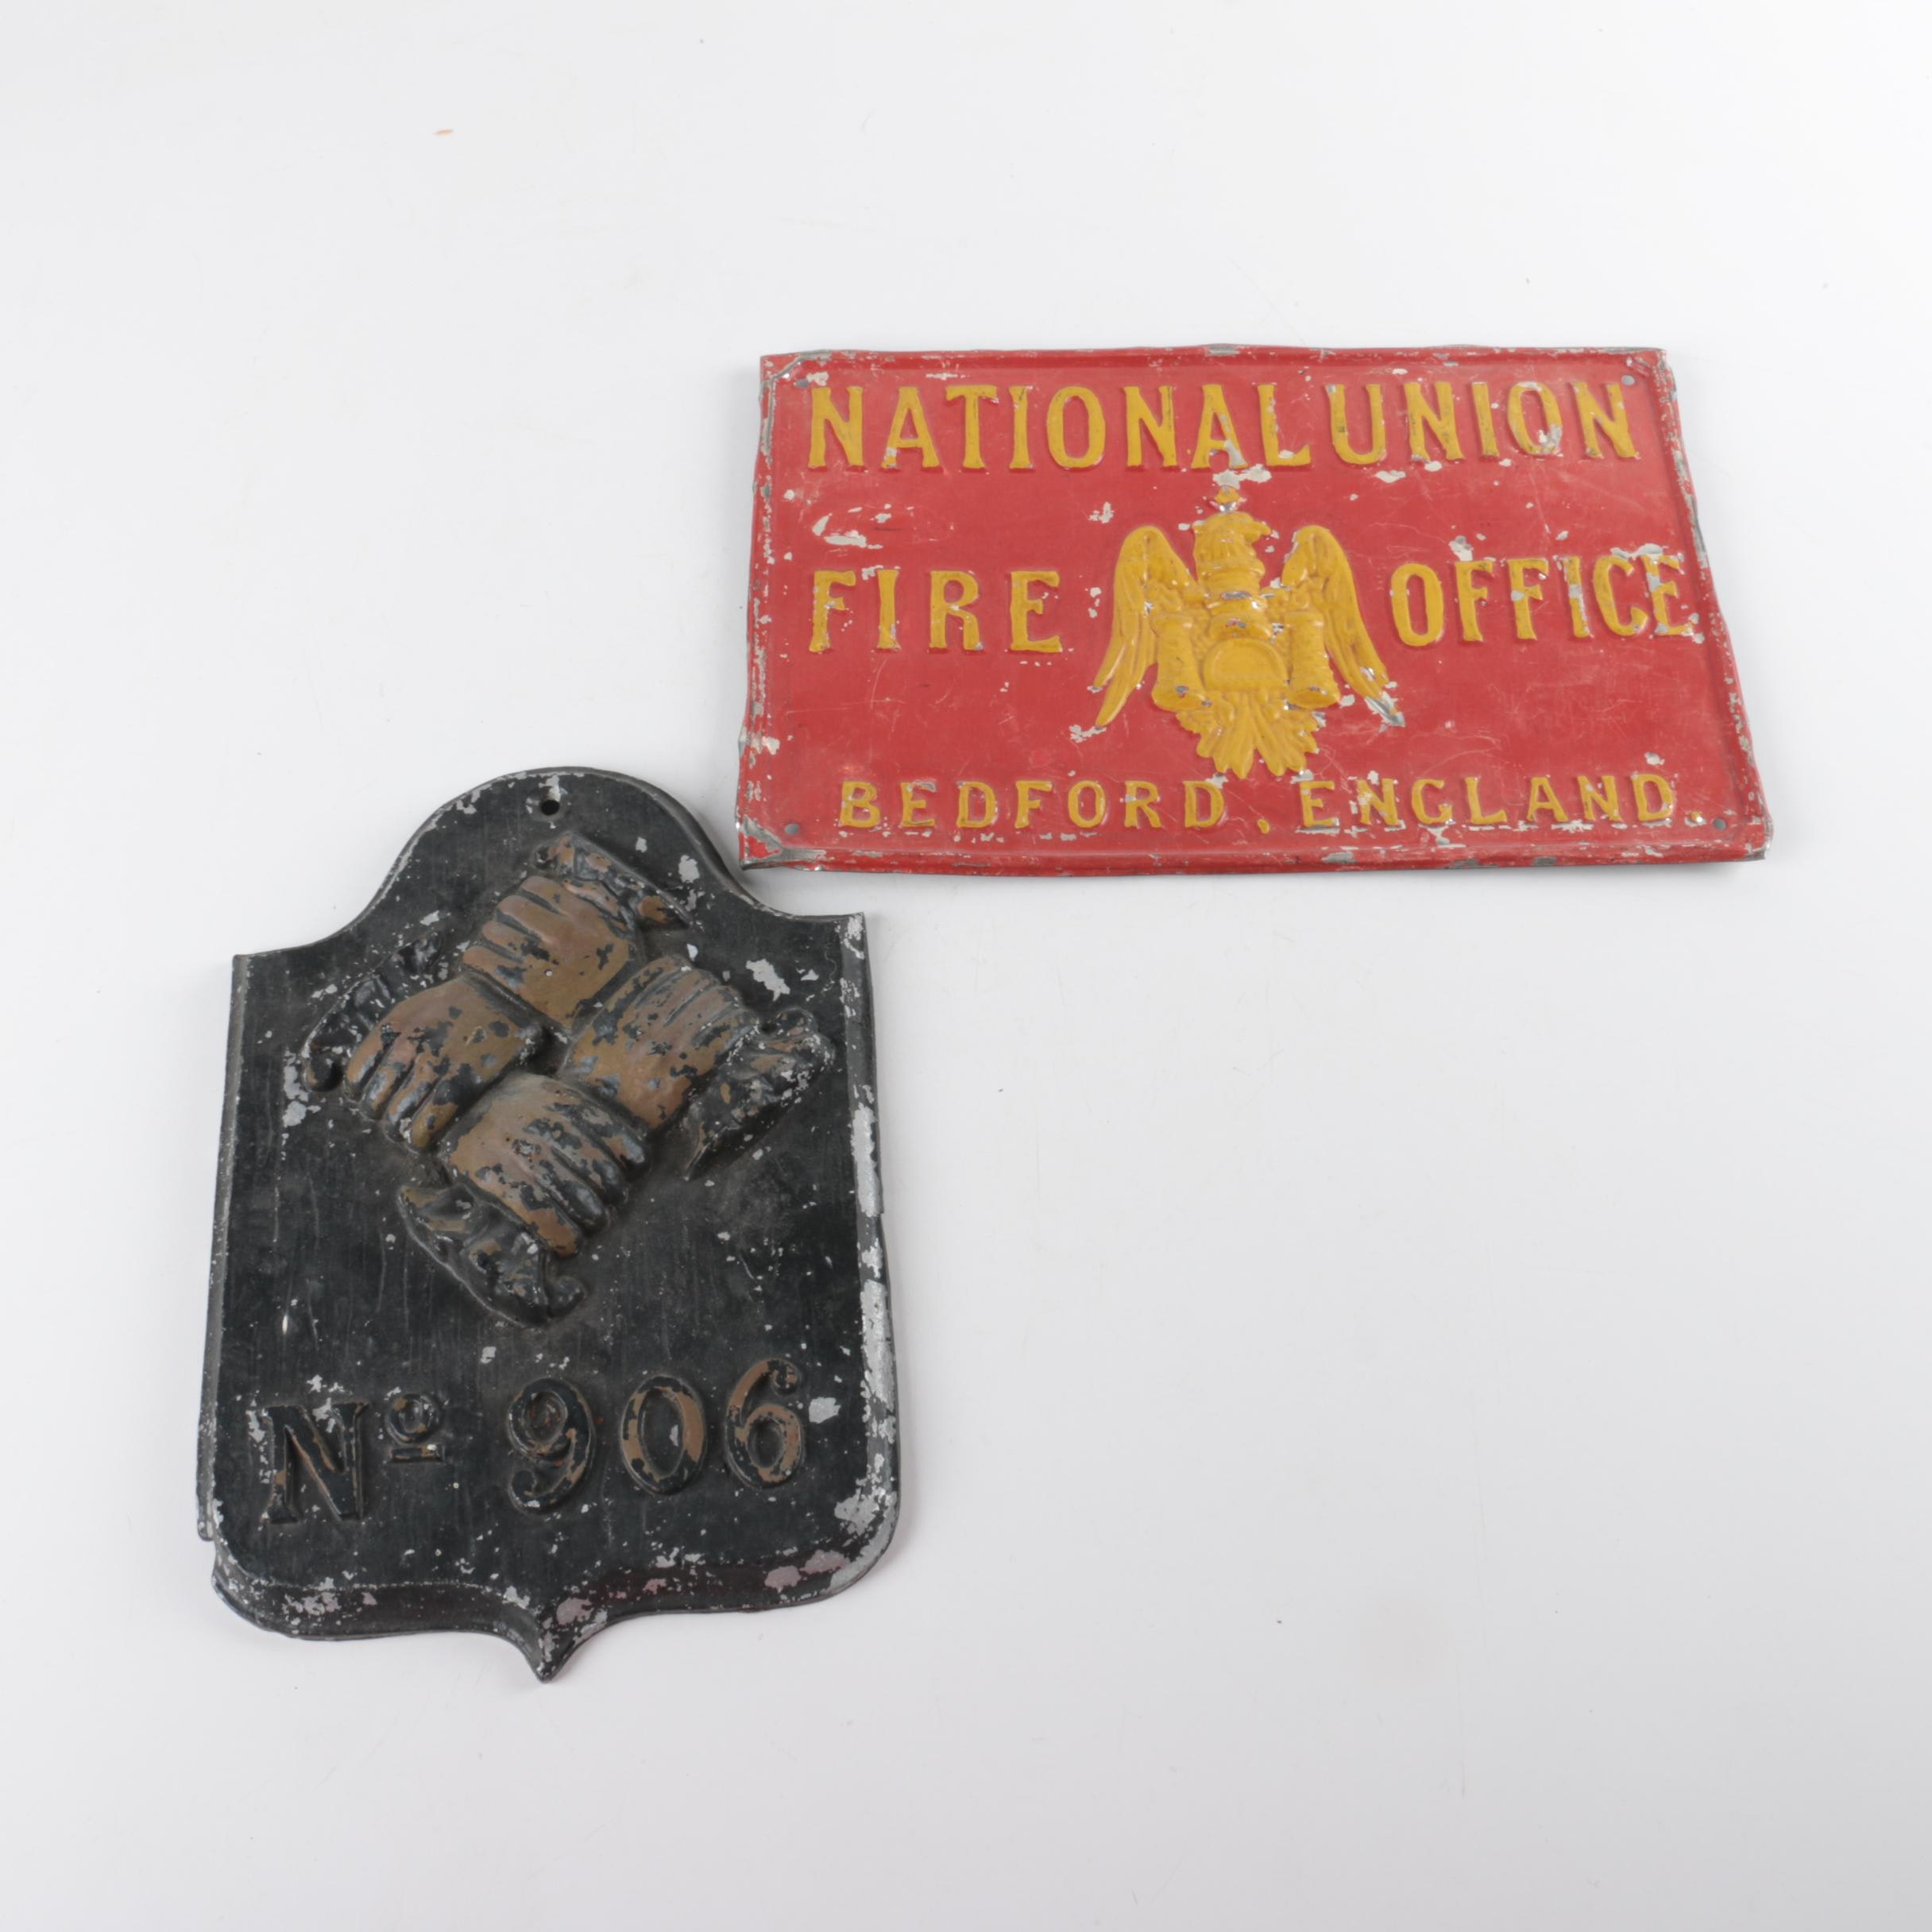 Cast Iron Firemark from the National Union Fire Office, Bedford, England